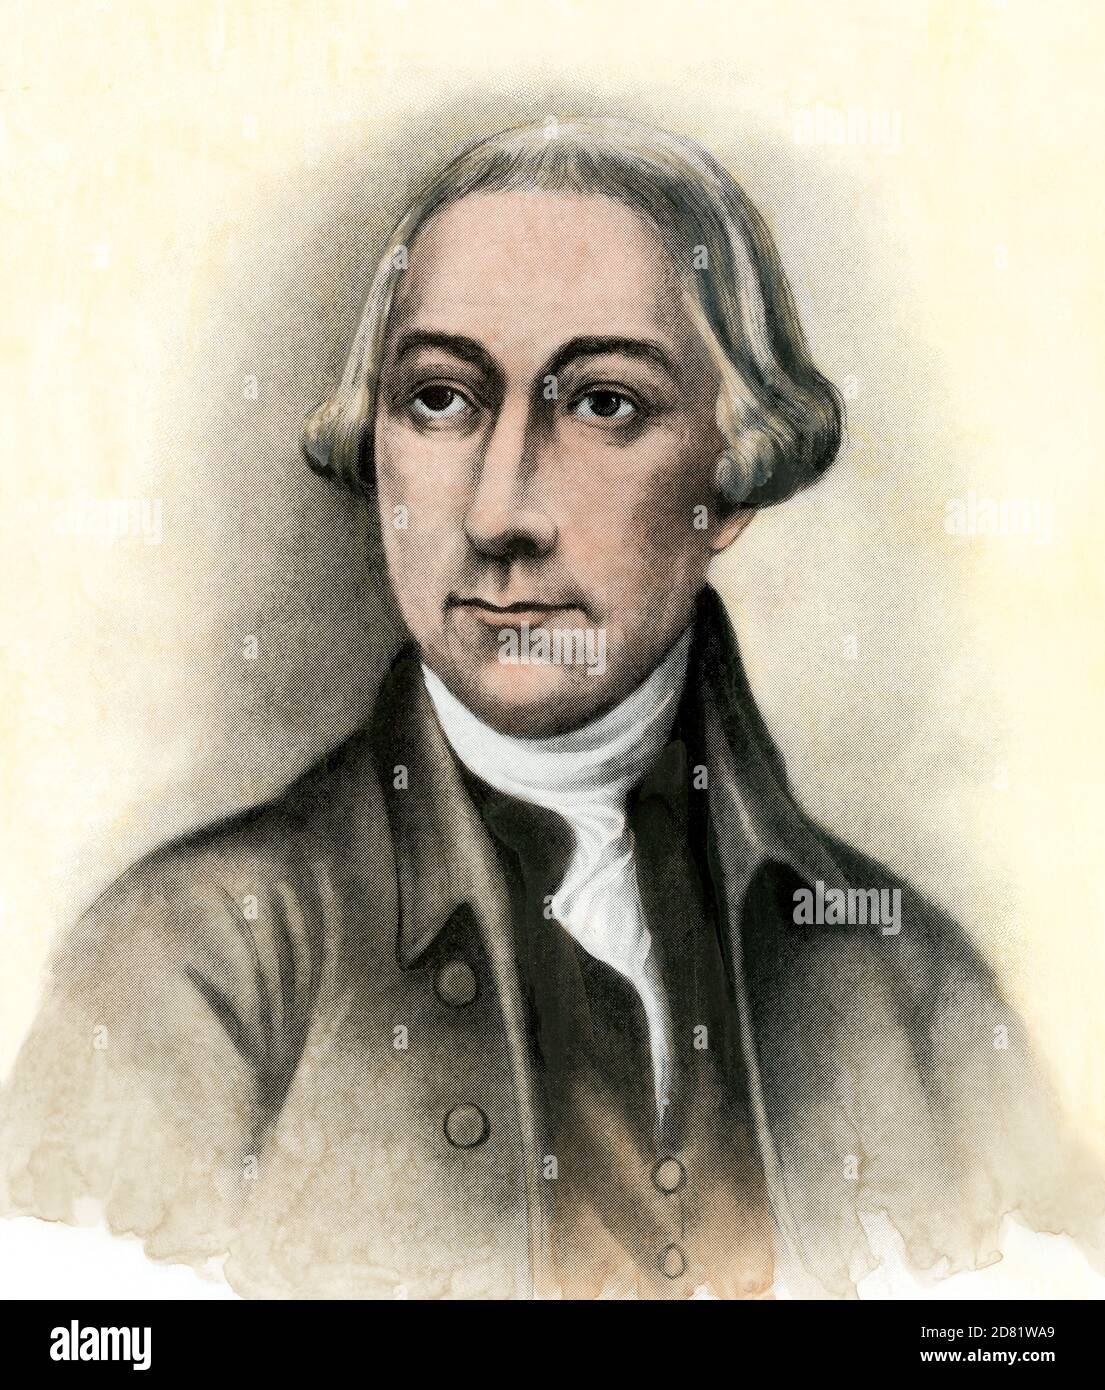 Joseph Hewes, signer of the Declaration of Independence. Hand-colored halftone Stock Photo